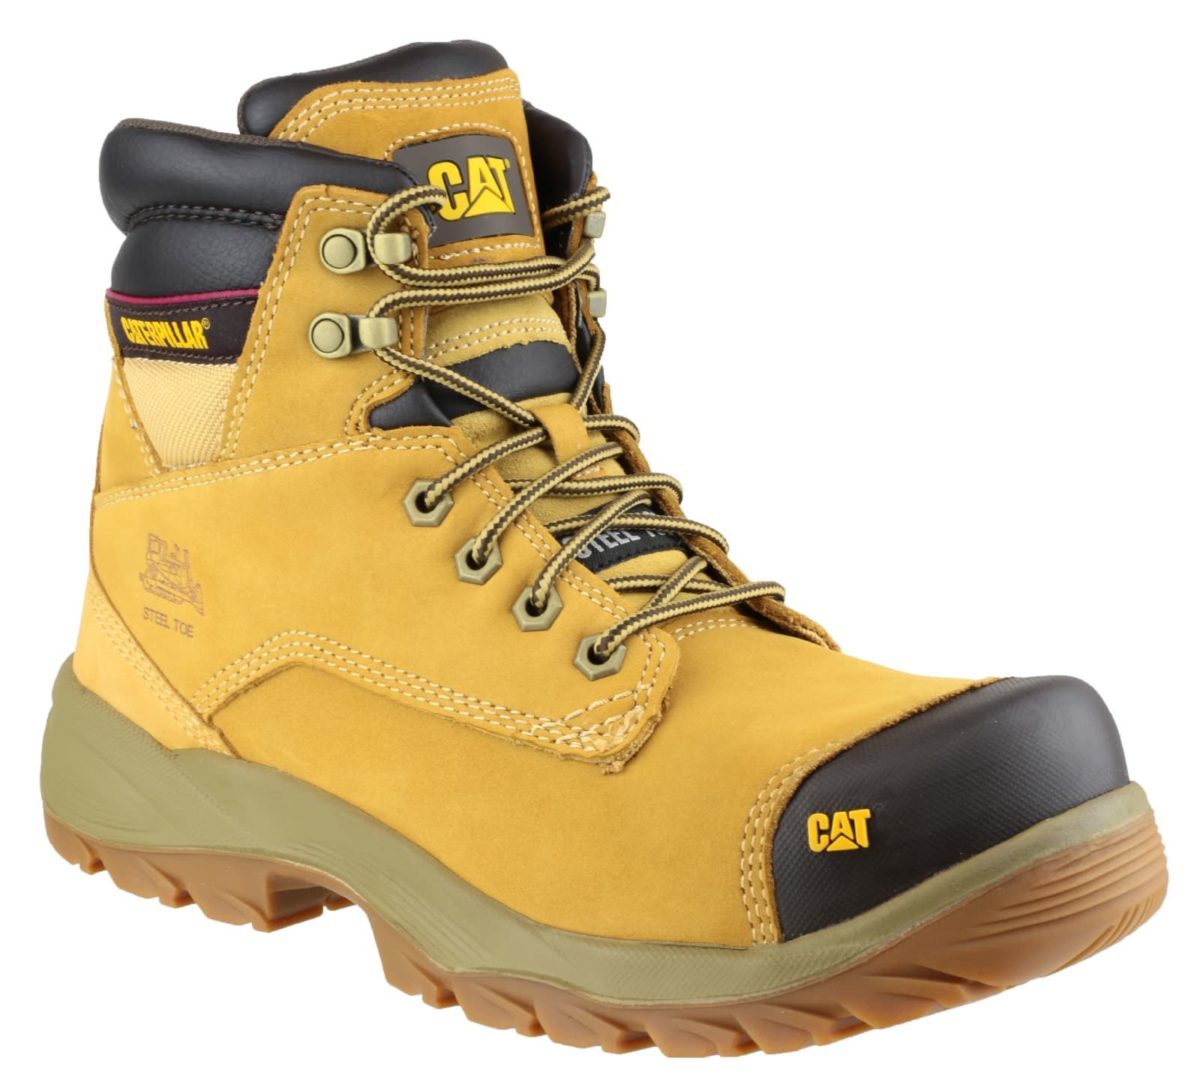 CAT Spiro Safety Boot